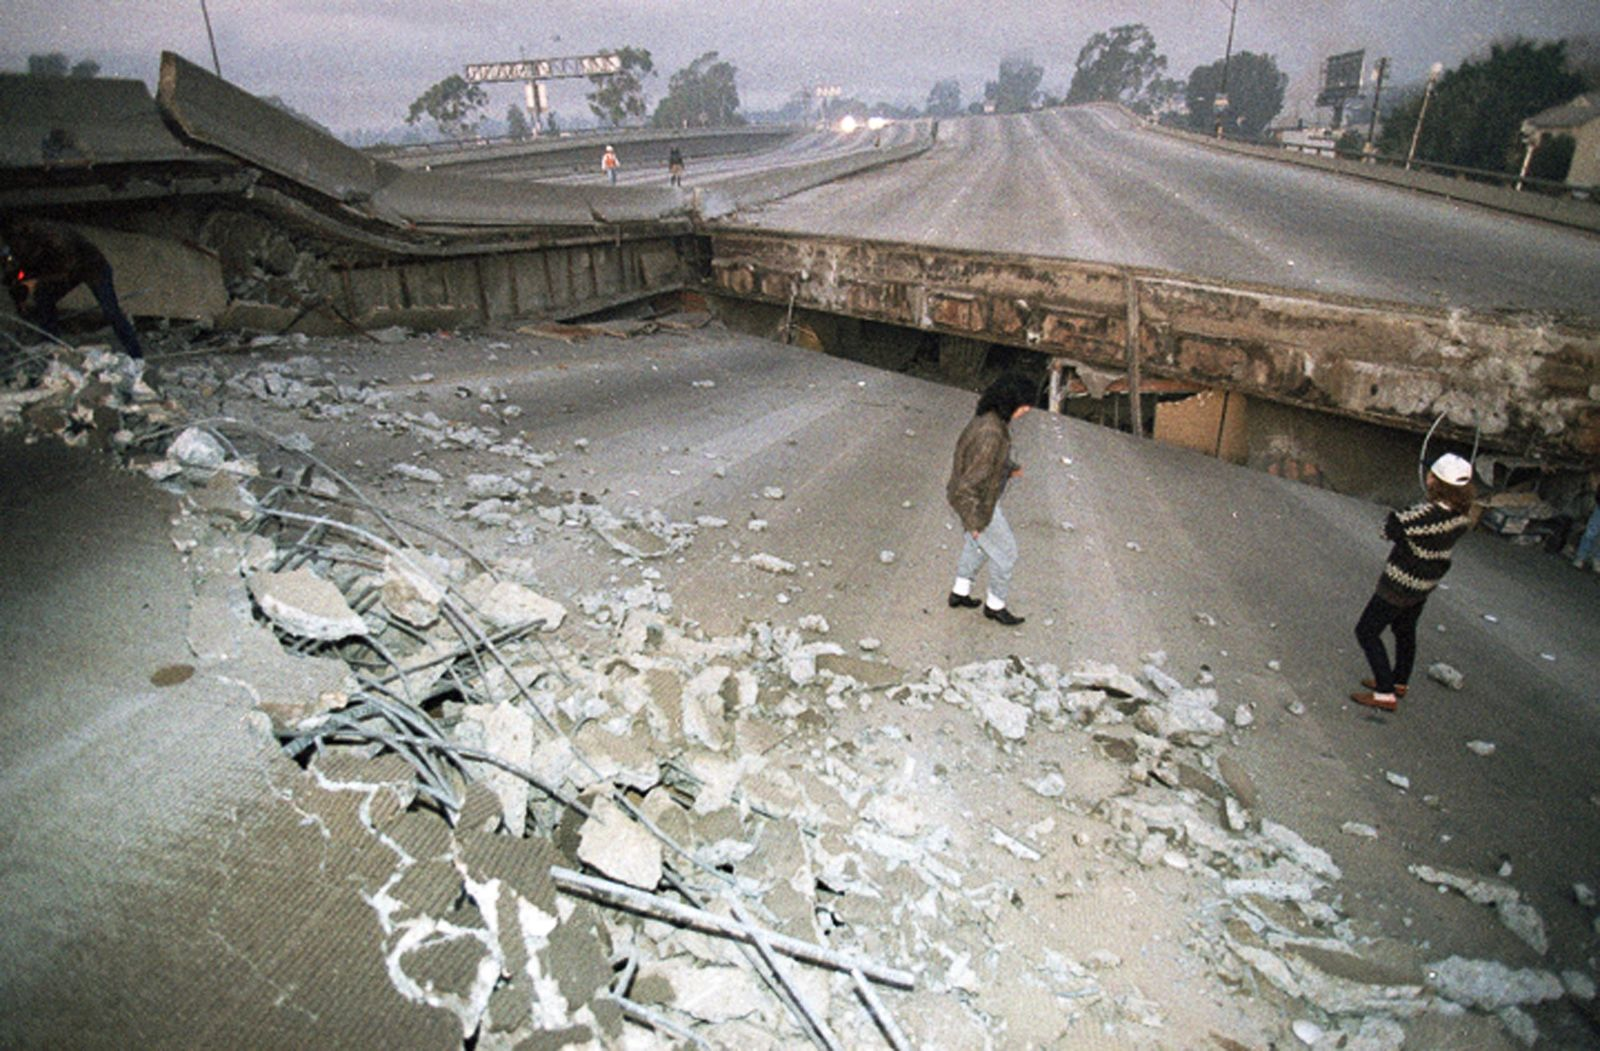 FILE - In this Jan. 17, 1994, file photo, Interstate 10, the Santa Monica Freeway, split and collapsed over La Cienega Boulevard following the Northridge quake in the predawn hours in Los Angeles.  (AP Photo/Eric Draper, File)